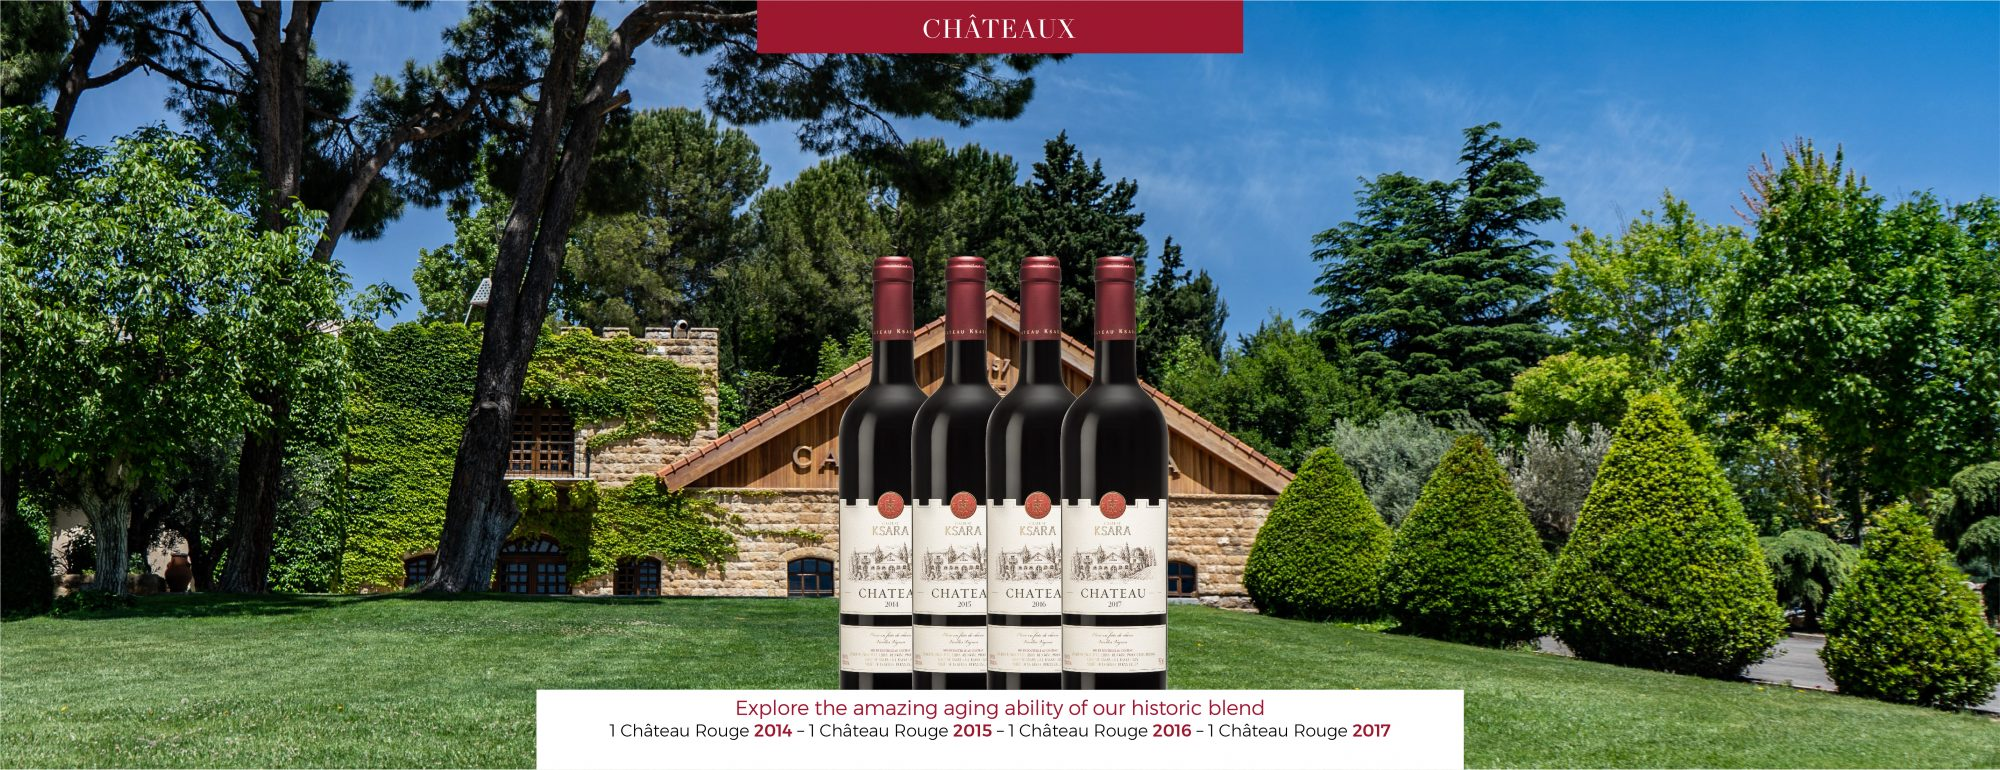 Explore the amazing aging ability of our historic blend - 1 Château Rouge 2014 - 1 Château Rouge 2015 - 1 Château Rouge 2016 - 1 Château Rouge 2017